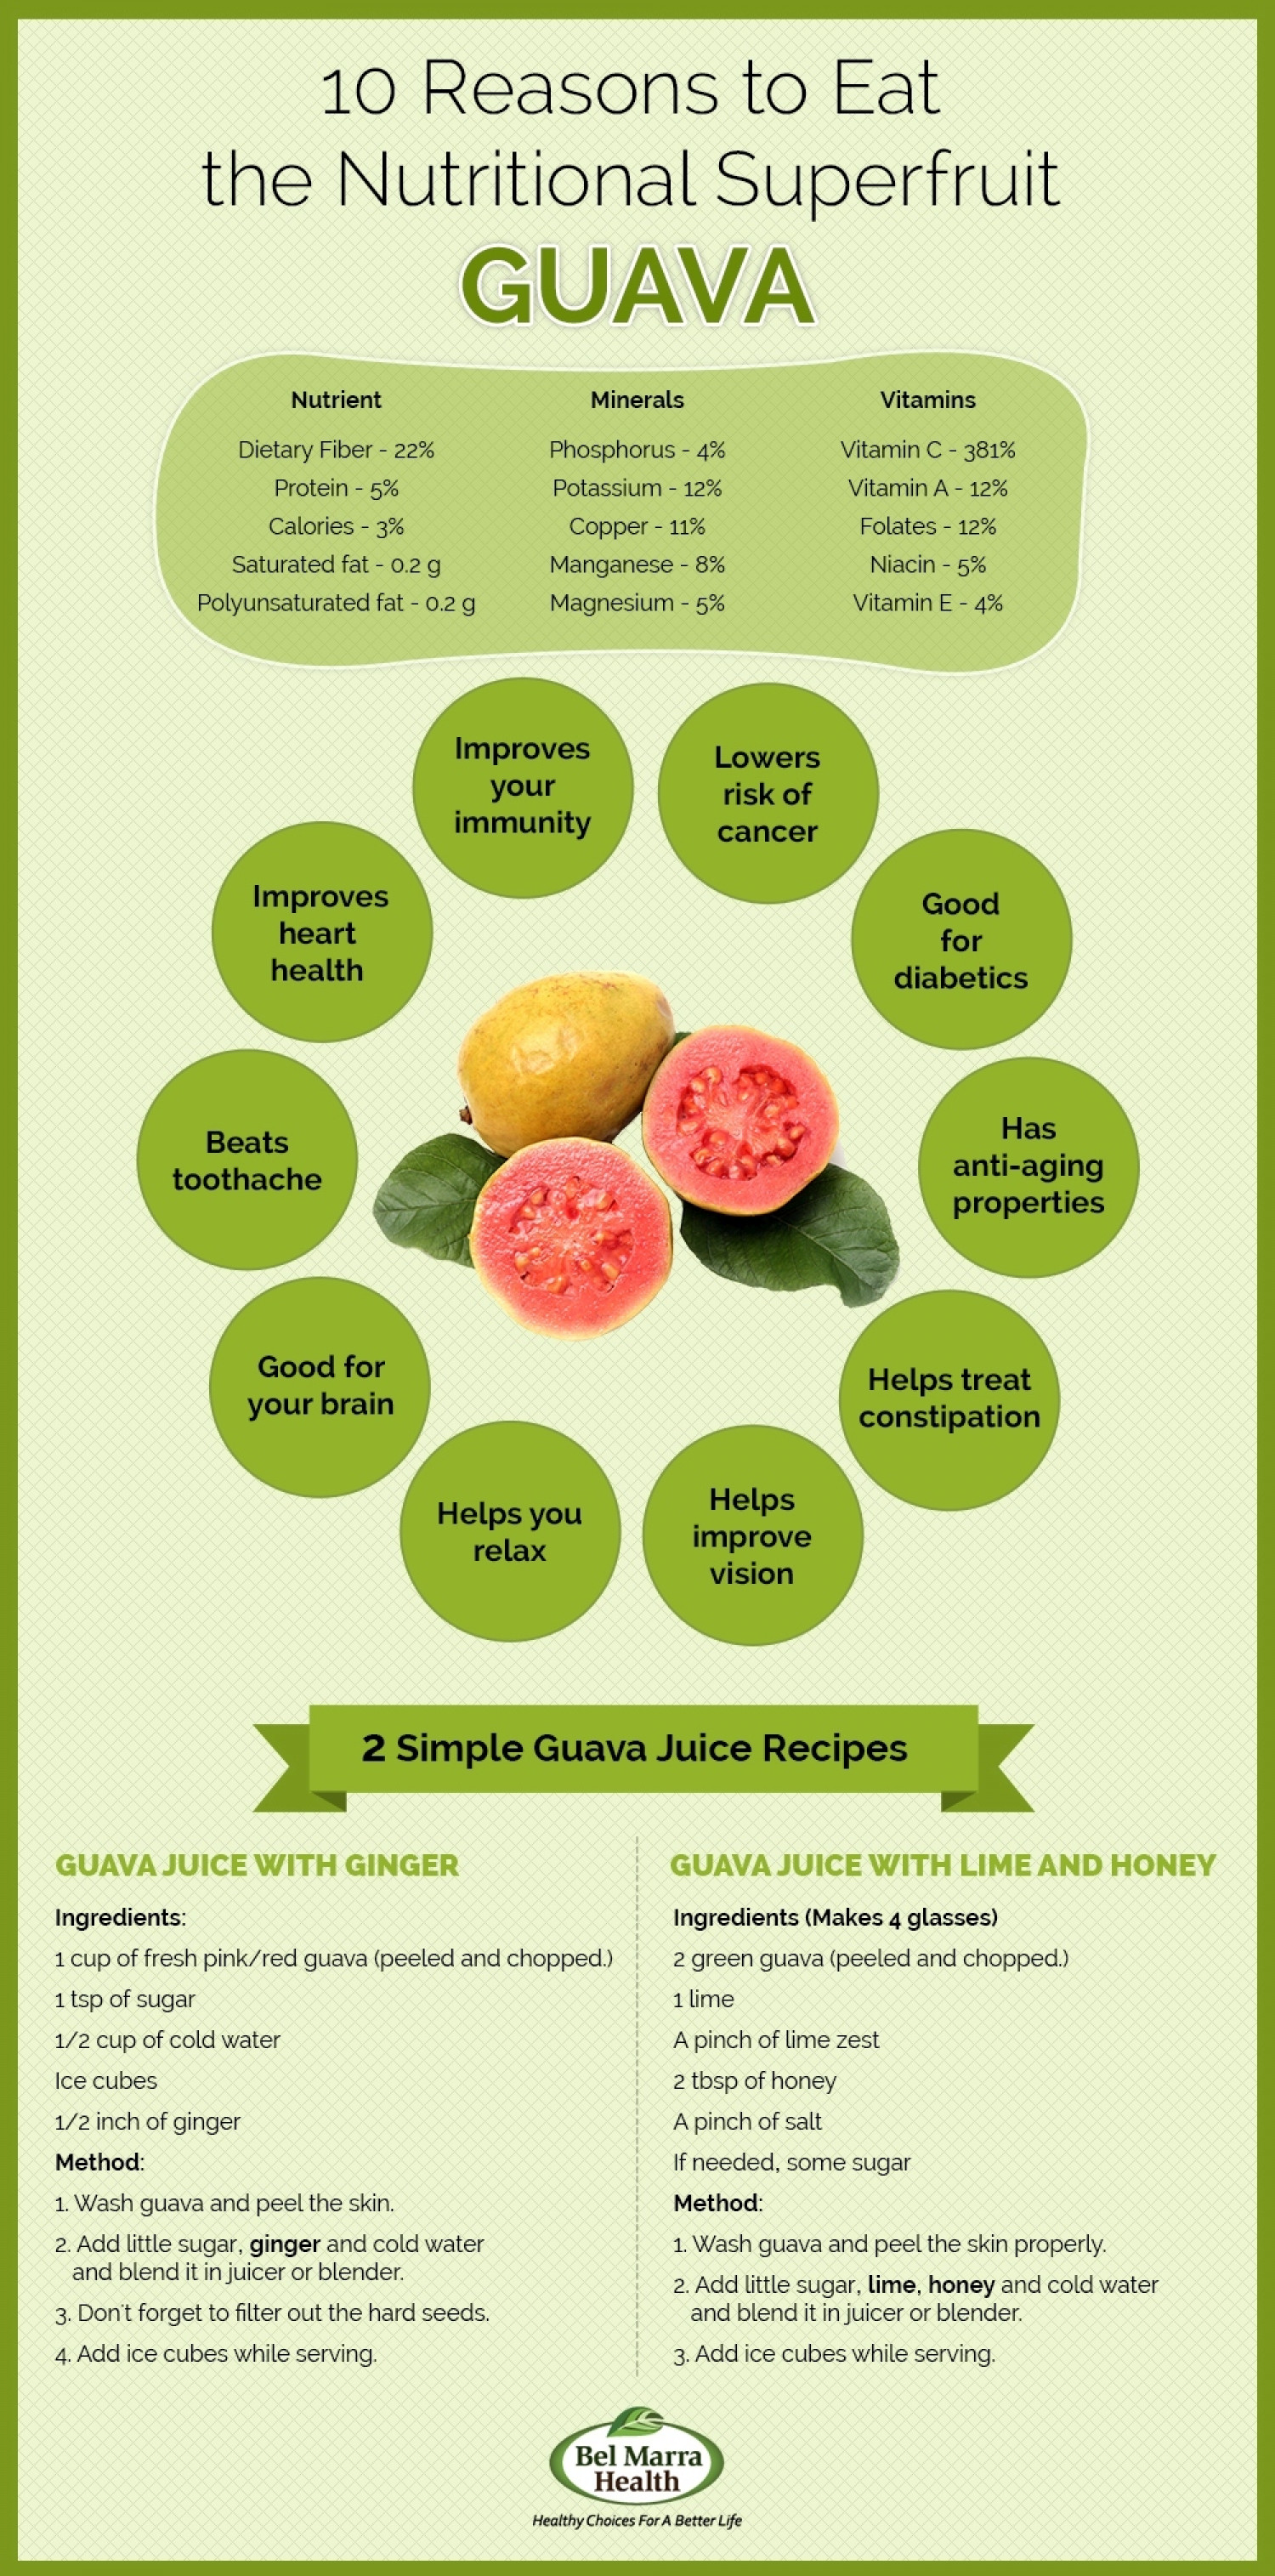 10 benefits of the superfruit - guava | visual.ly